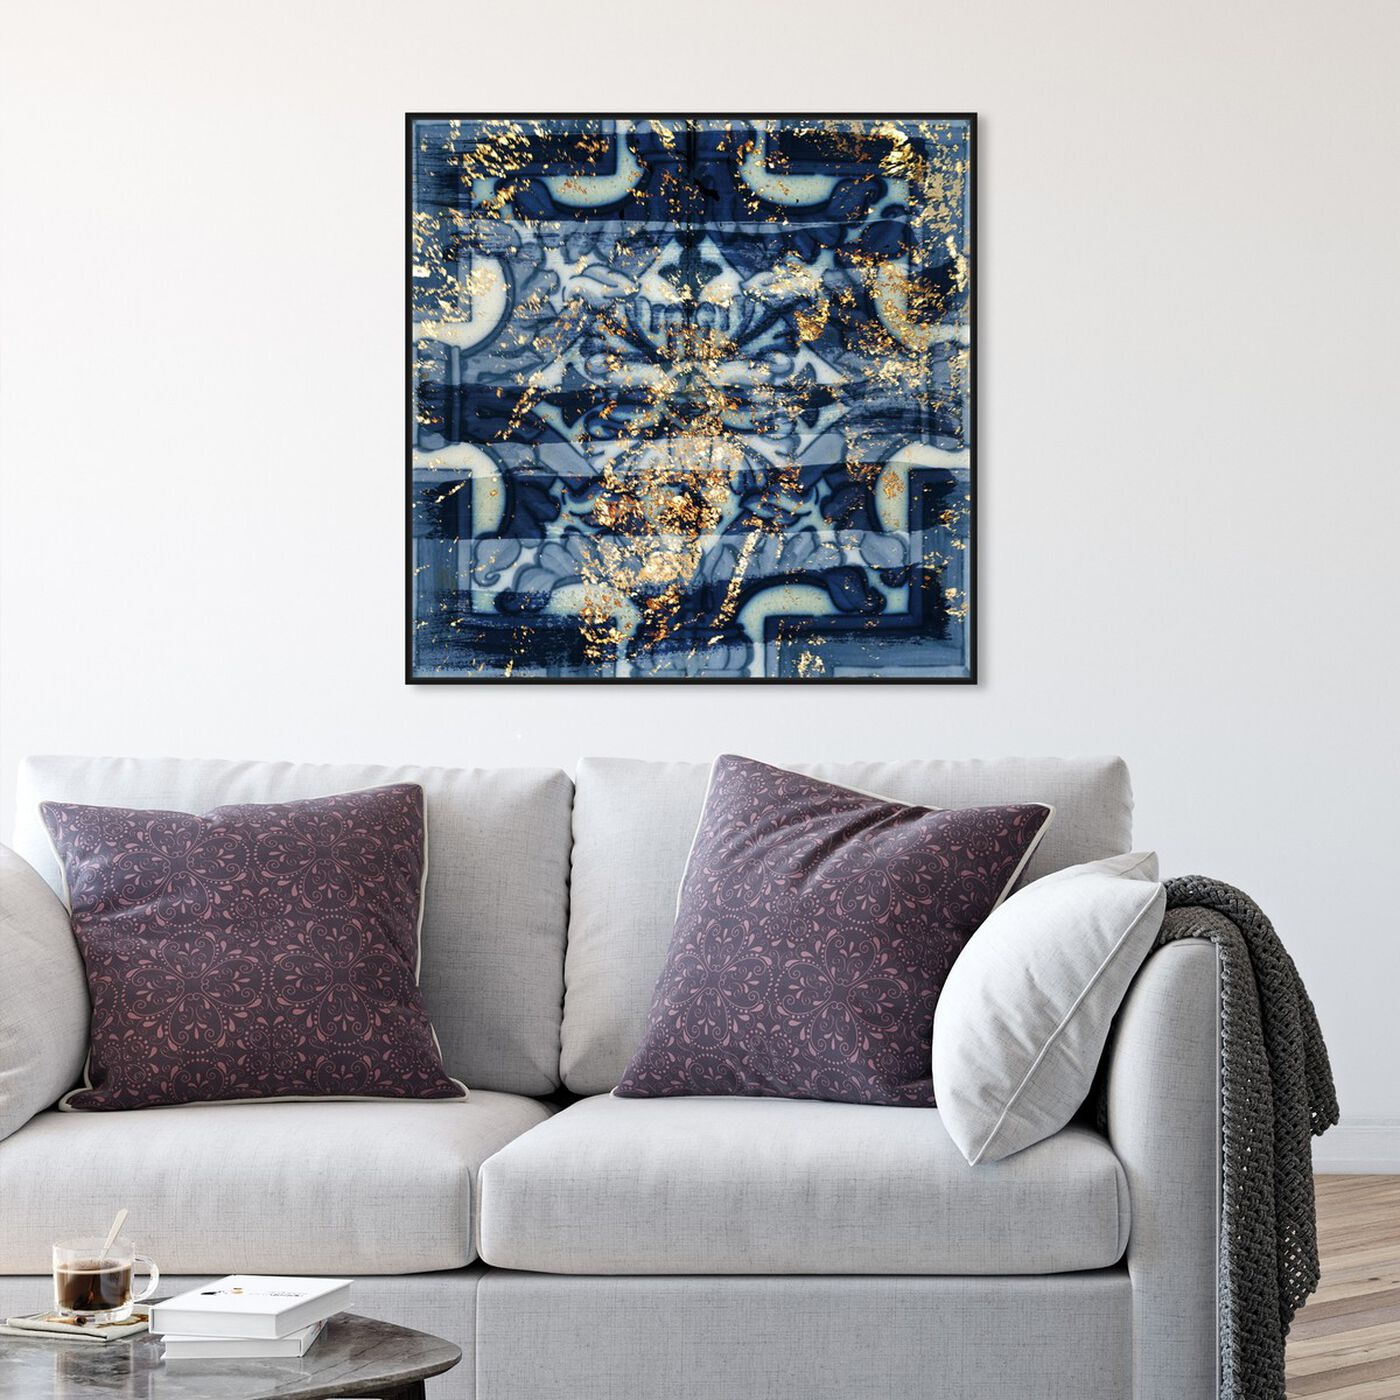 Hanging view of Tileaux featuring abstract and patterns art.